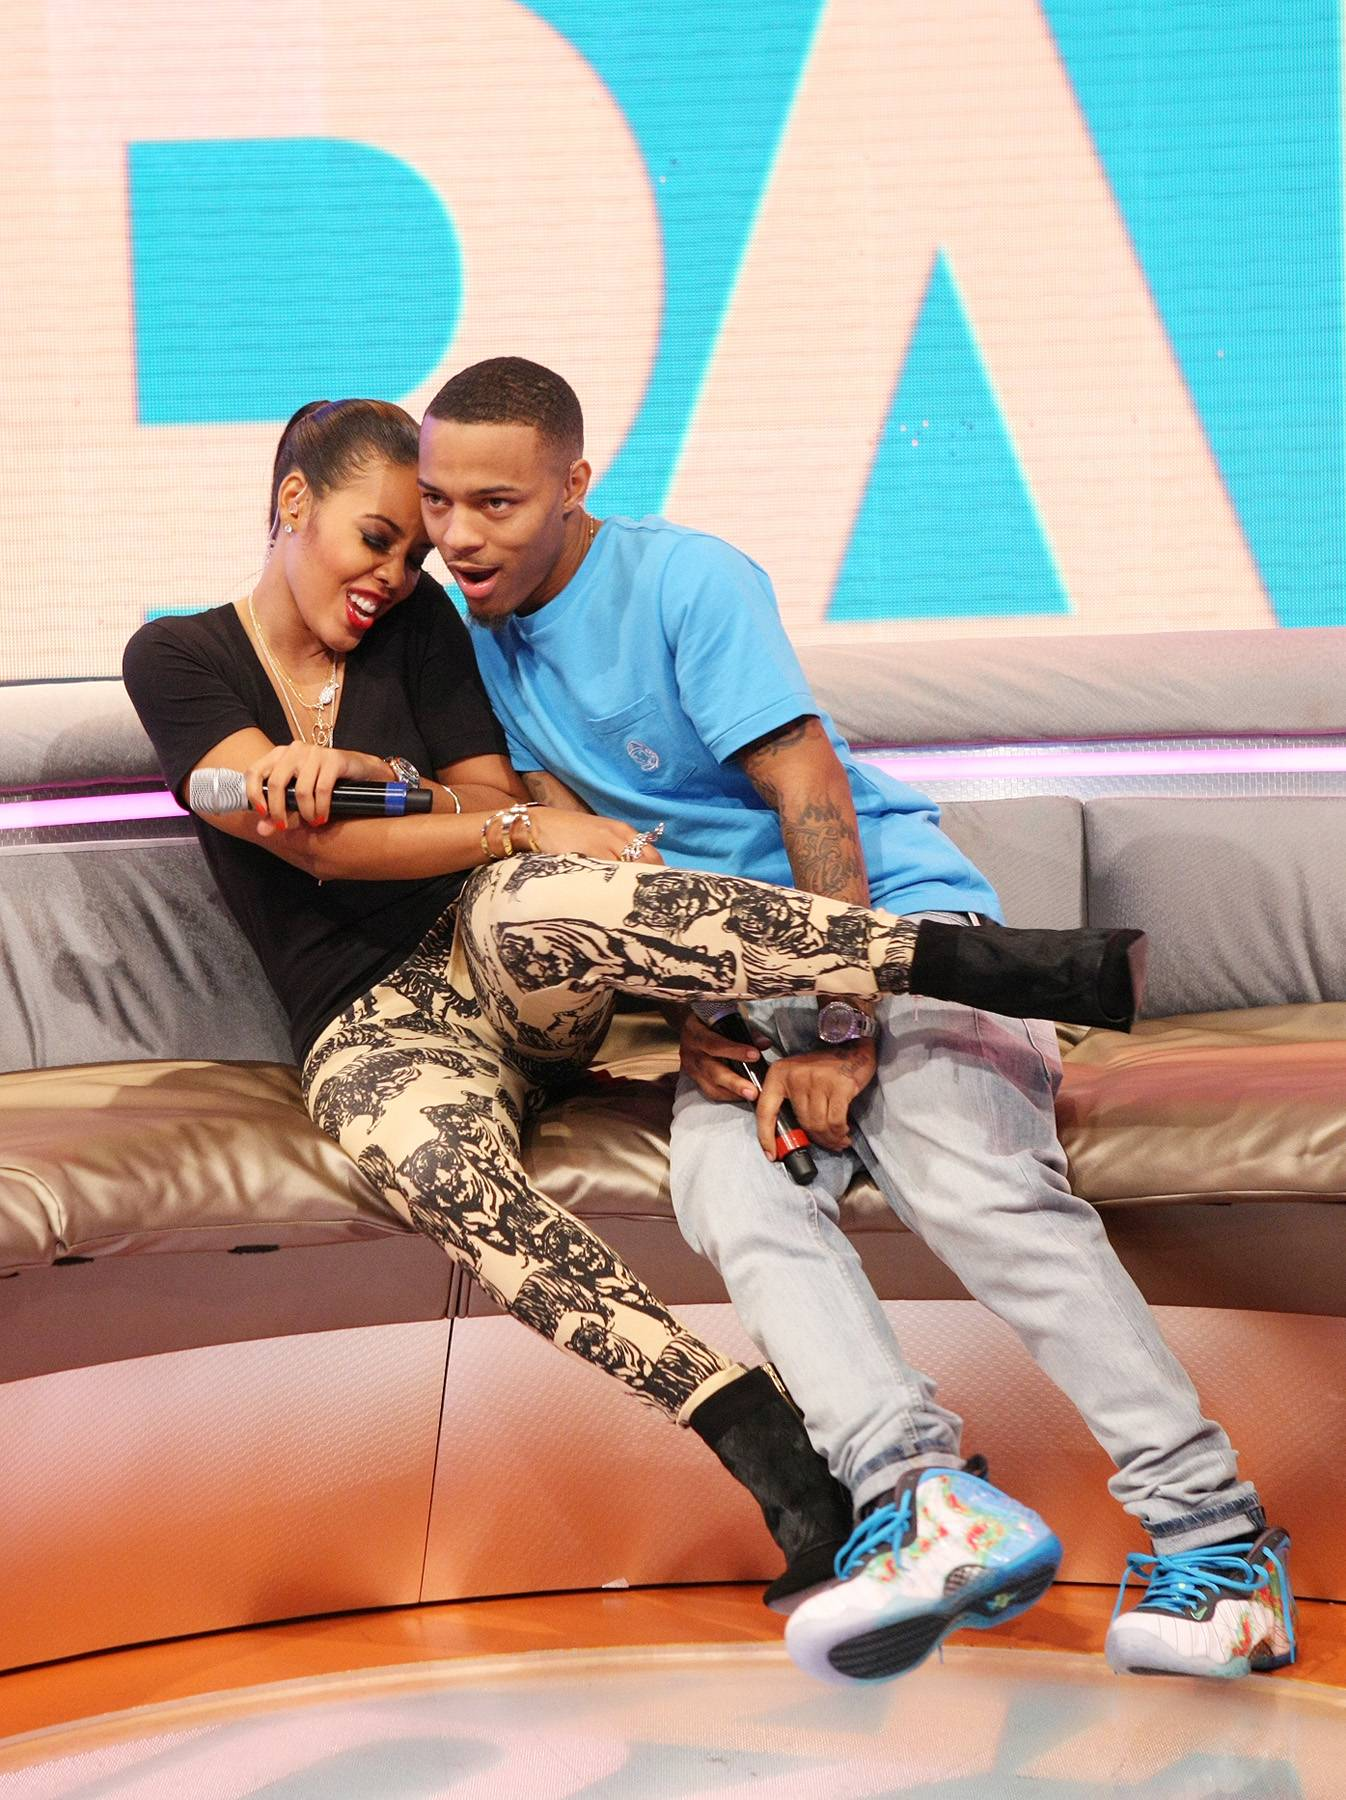 Clownin' - Hosts Angela Simmons and Bow Wow clownin' while on the set of 106. (Photo: Bennett Raglin/BET/Getty Images for BET)